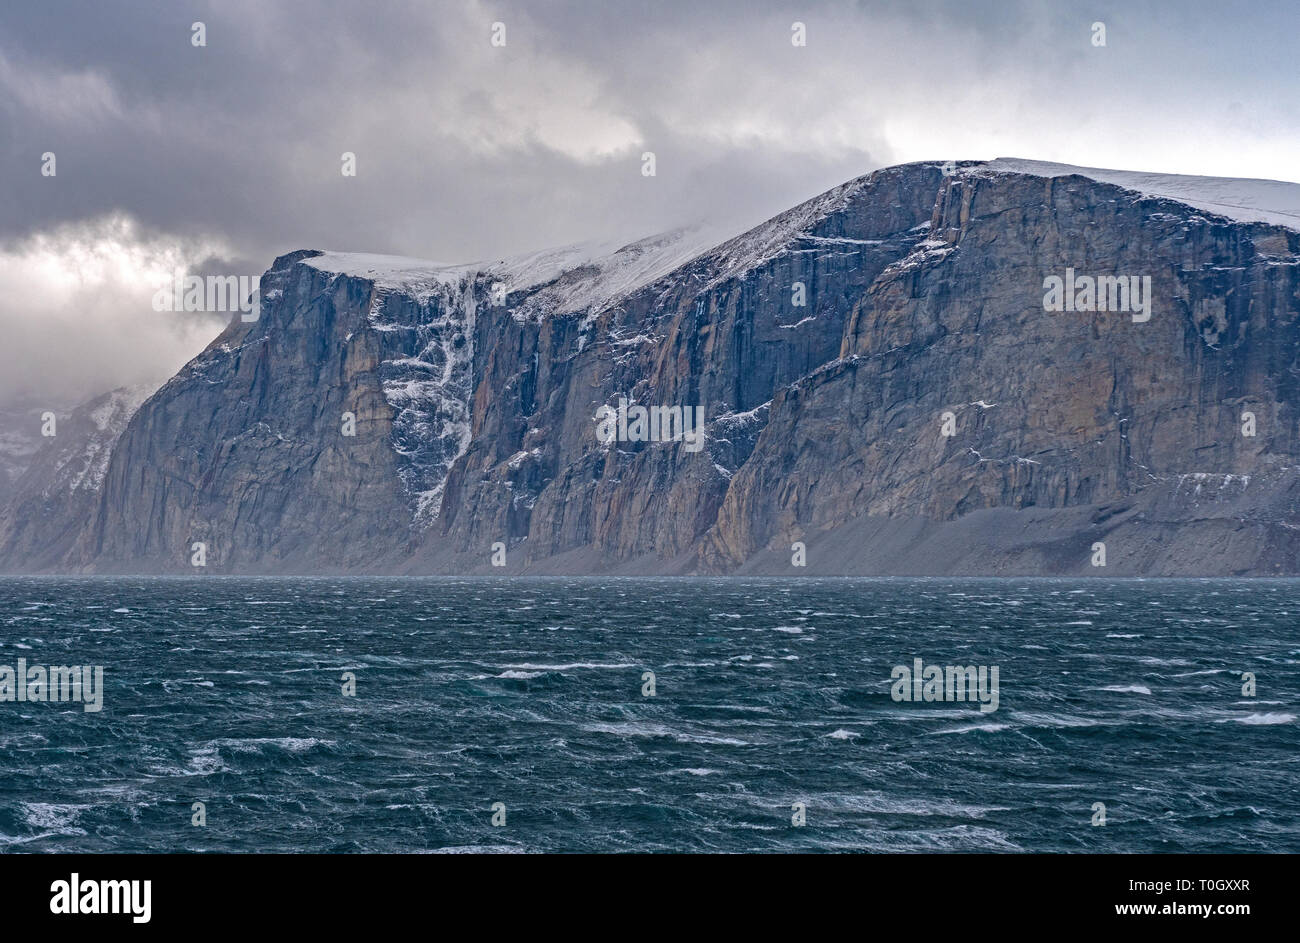 Dramatic Cliffs Above Storm Tossed Seas in the Sam Ford Fjord on Baffin Island in Nunavut, Canada - Stock Image